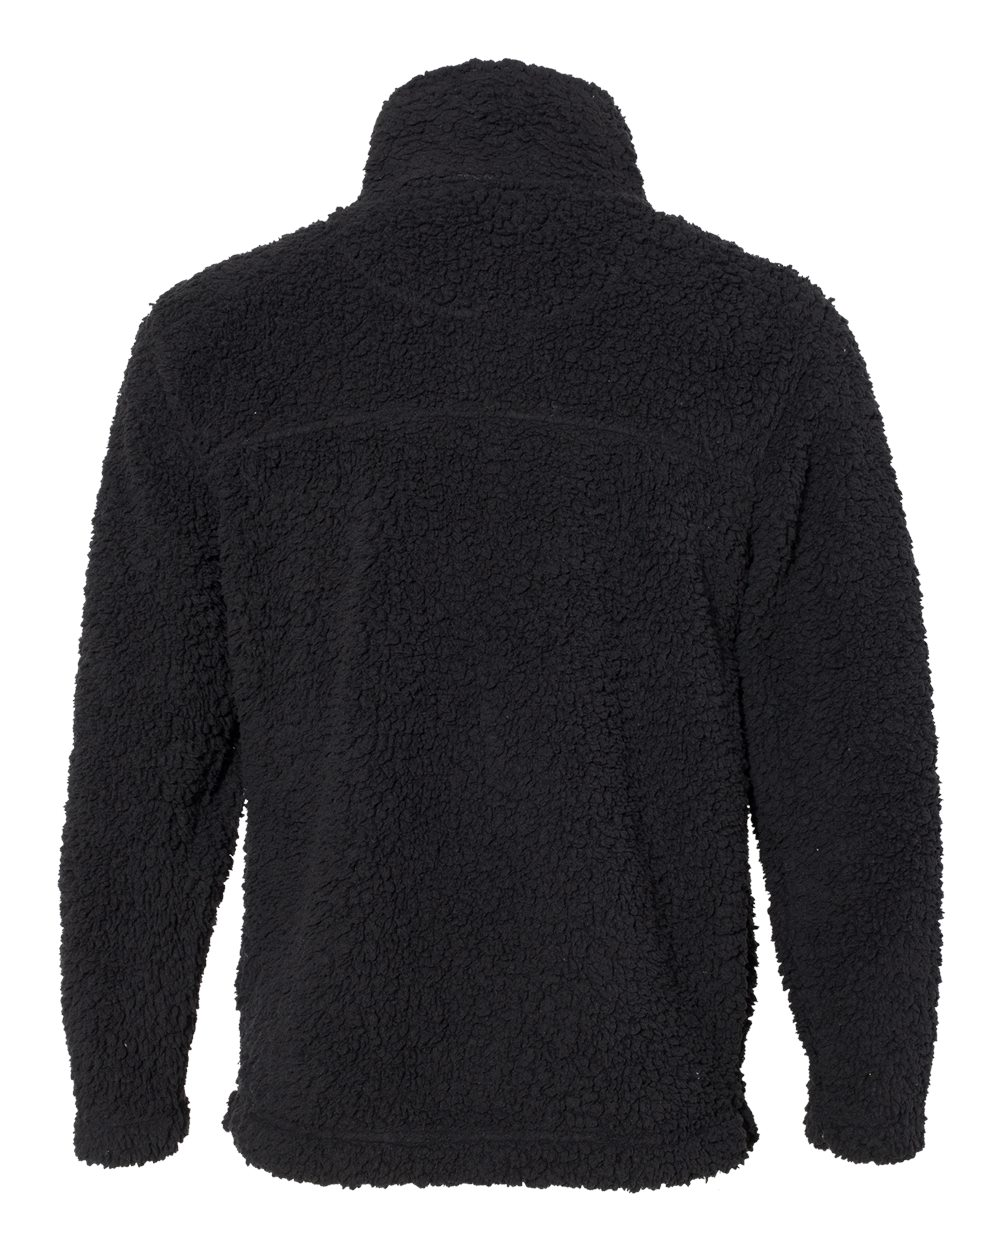 Boxercraft-Unisex-Sherpa-Quarter-Zip-Pullover-Sweatshirt-Sweater-Q10-up-to-3XL thumbnail 7